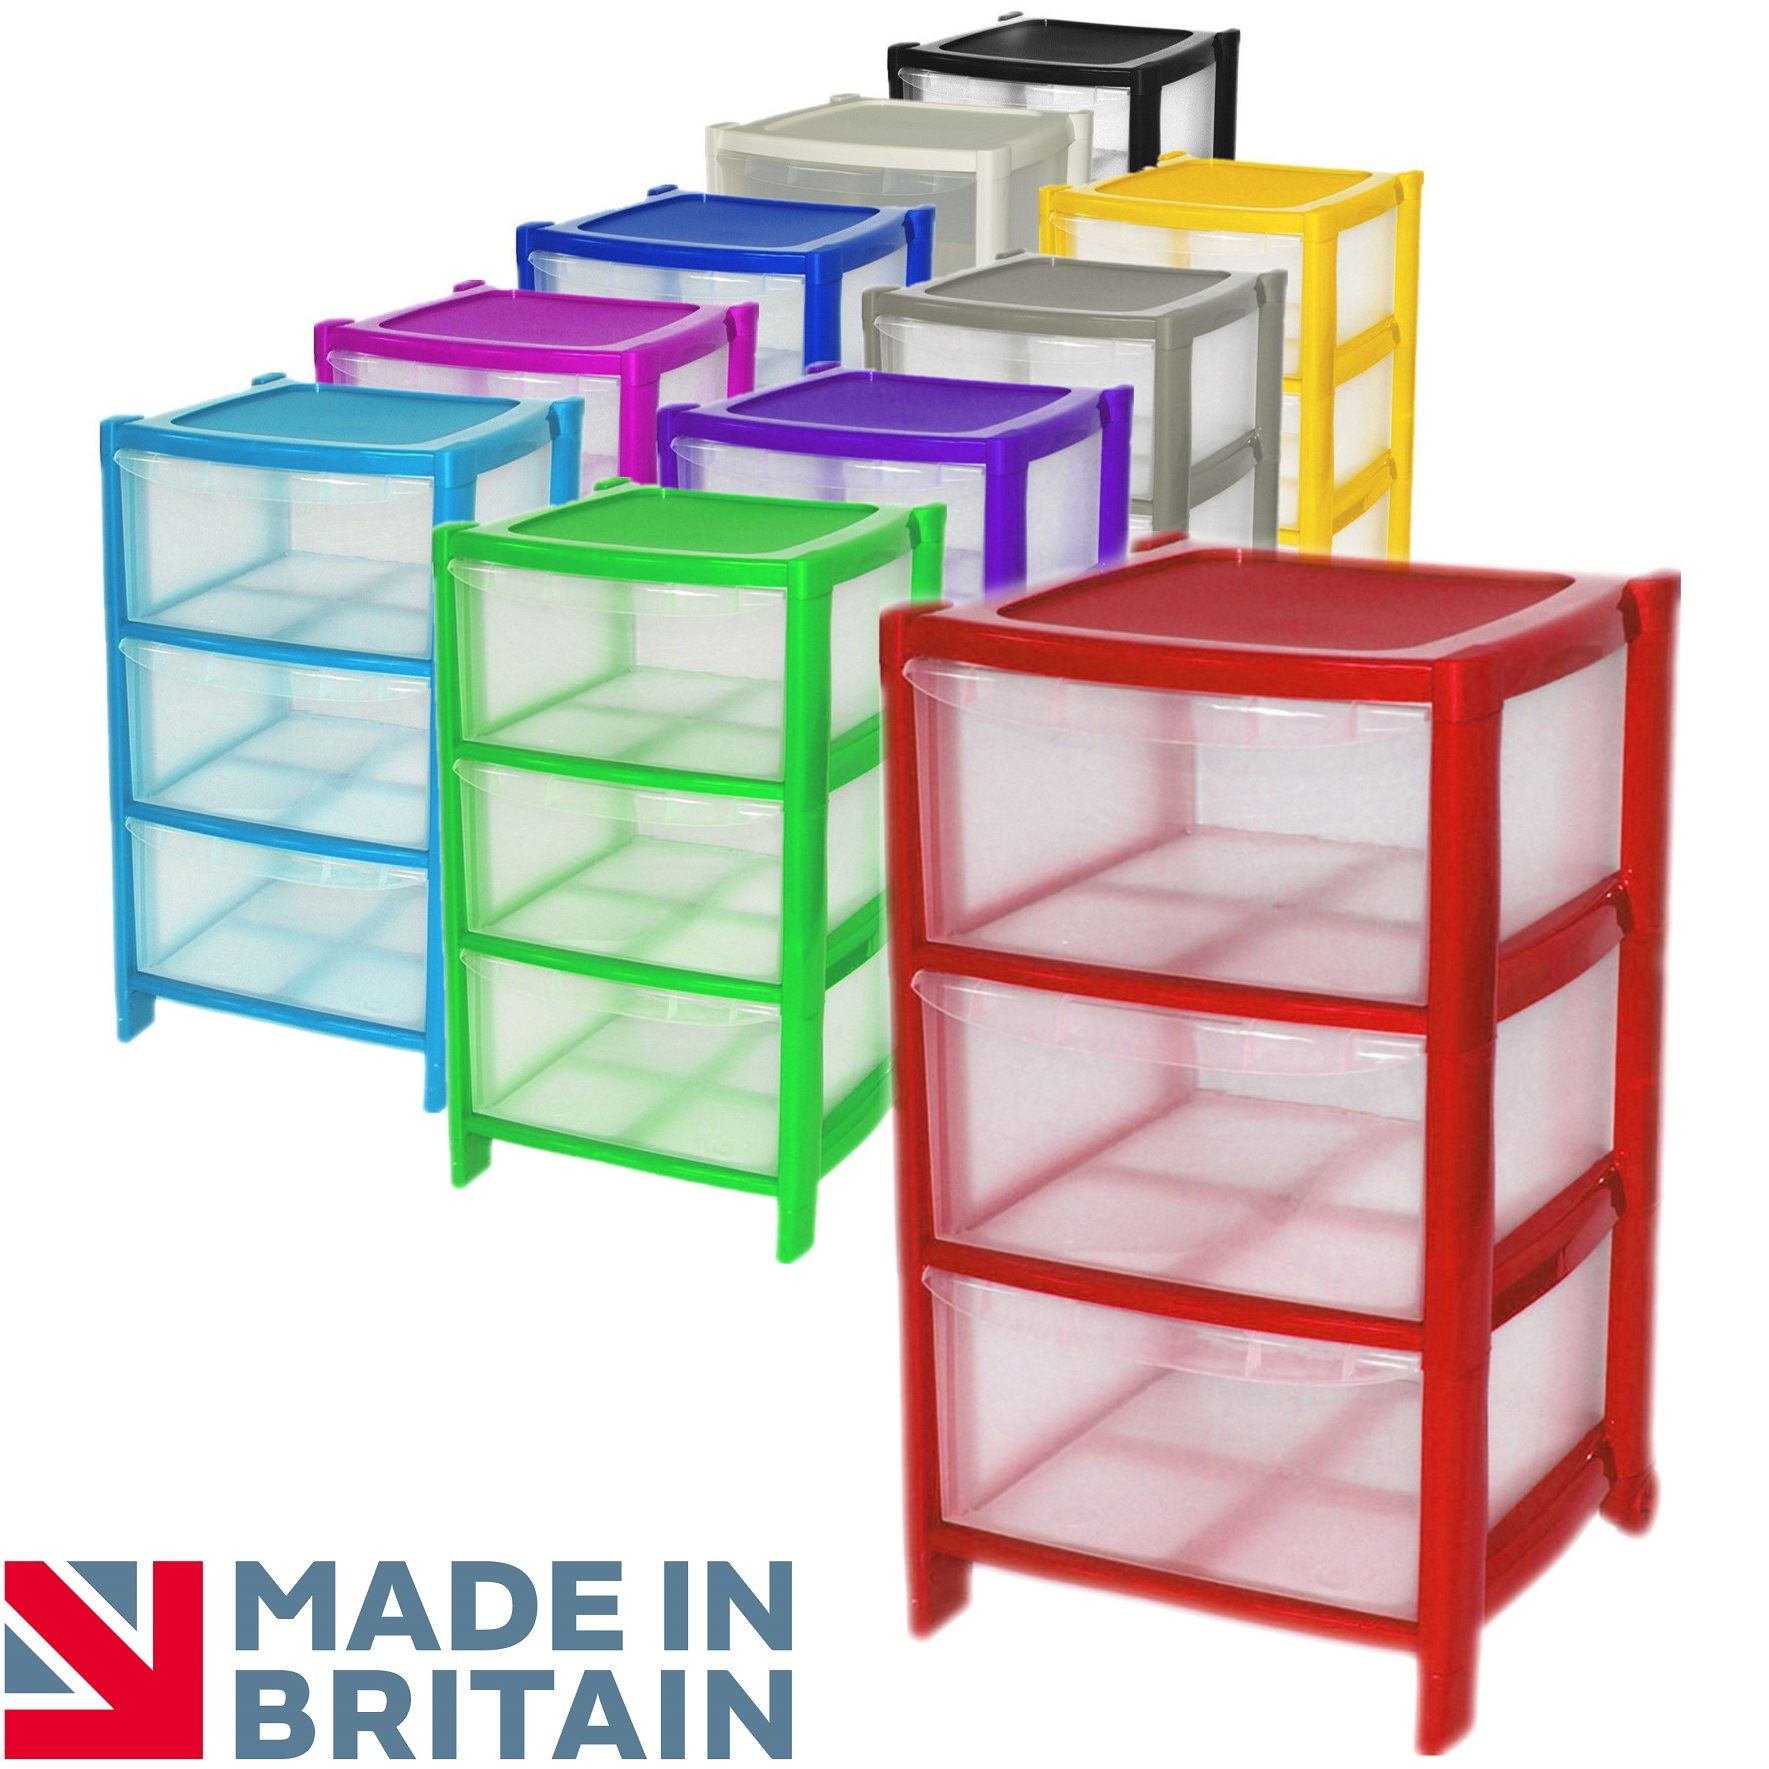 Simpa® 3 Drawer Plastic Storage Drawers Chest Unit with Wheels 38.5 x 39 x 66cm  sc 1 st  eBay & Simpa® 3 Drawer Plastic Storage Drawers Chest Unit with Wheels 38.5 ...